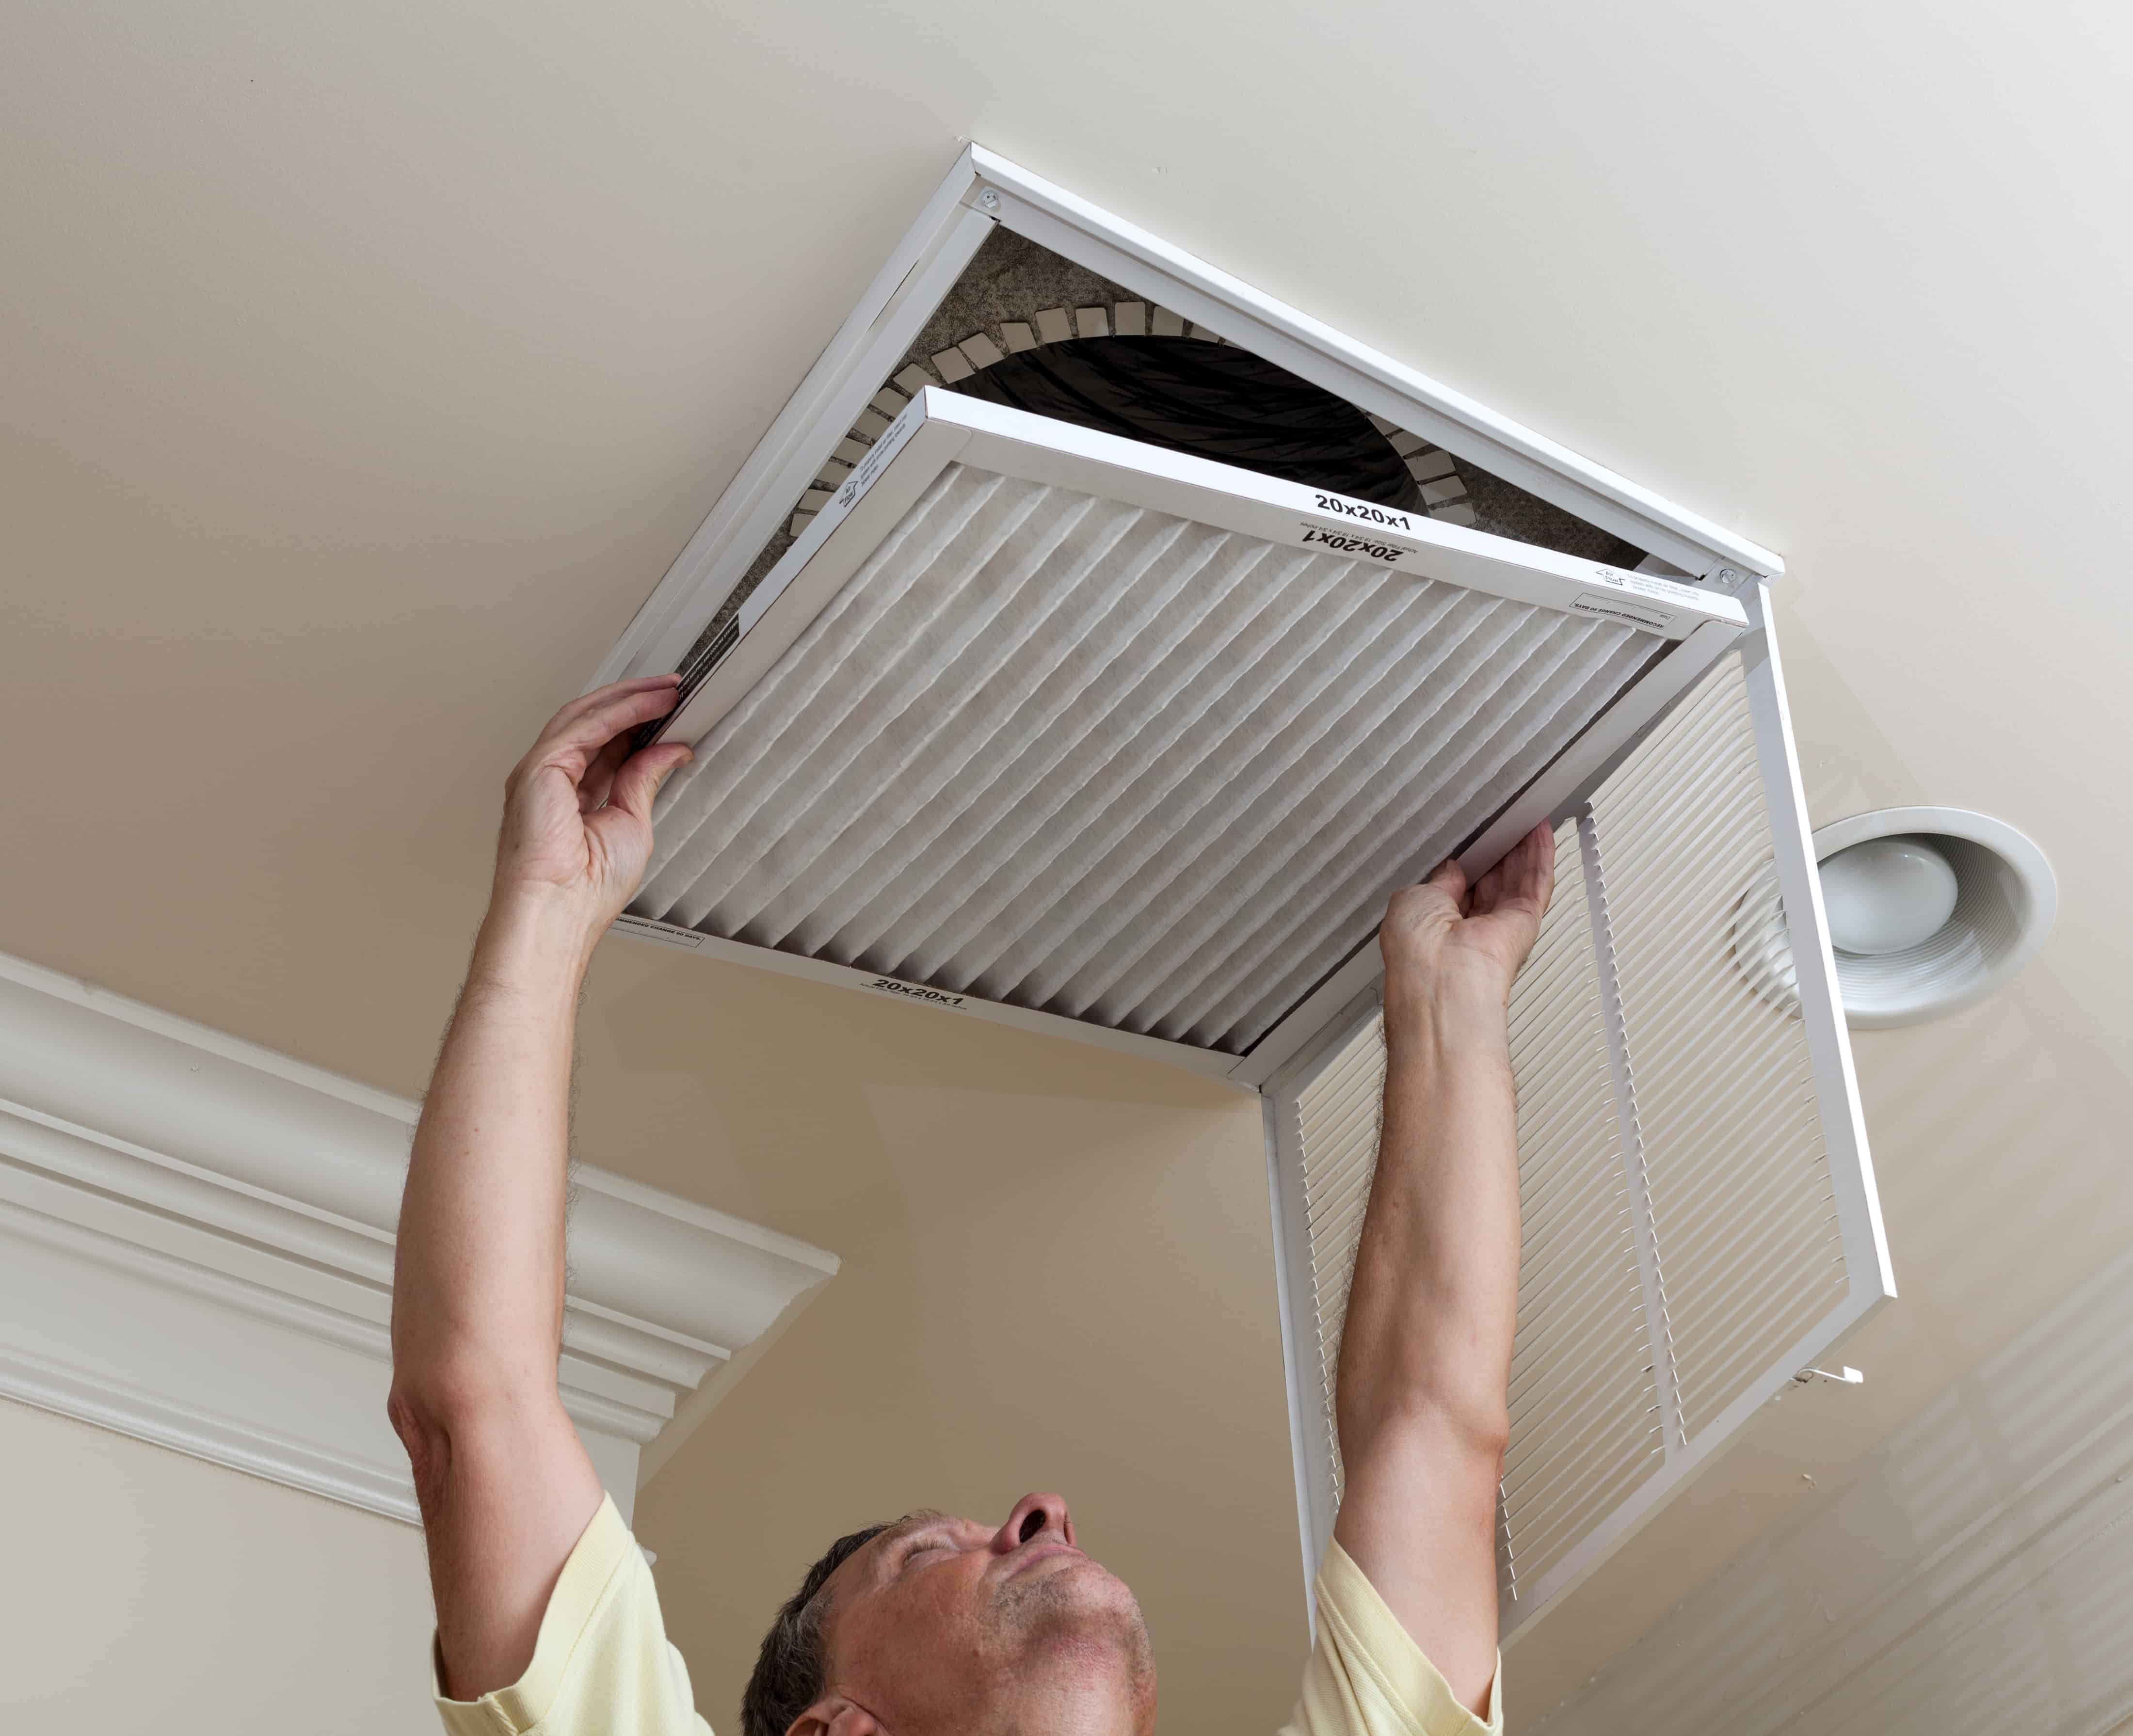 5 Reasons To Change Your AC and Furnace Filters - Digital ...